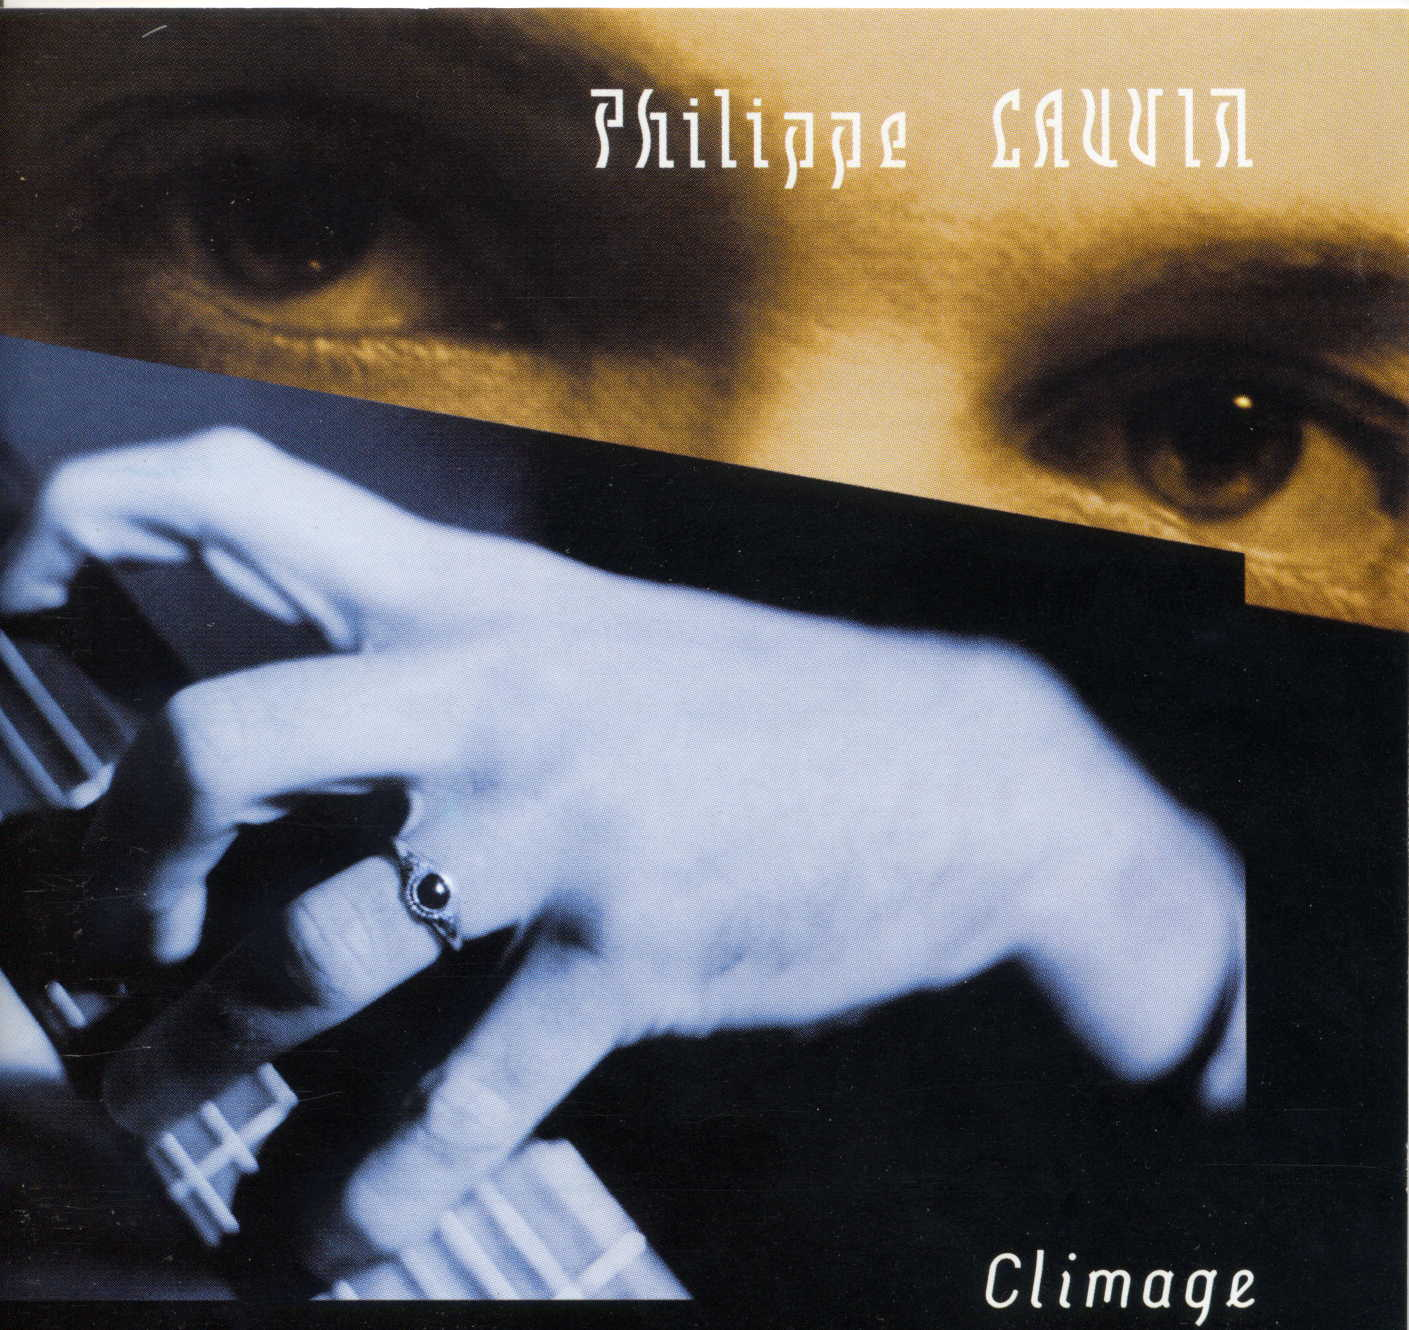 Philippe Cauvin- Climage